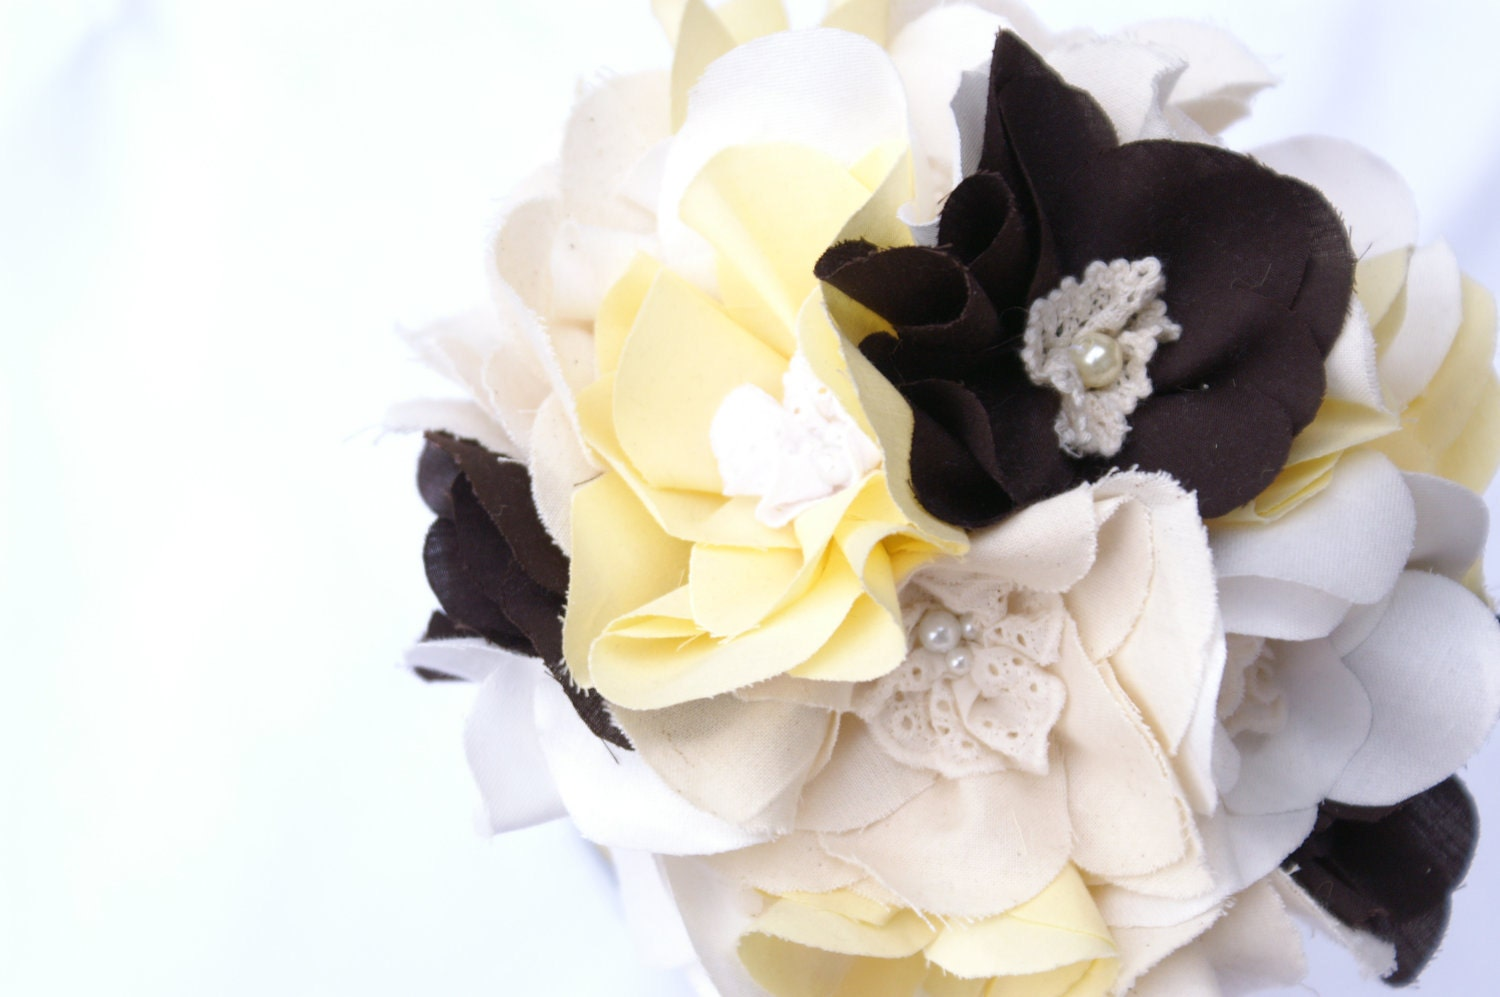 Fabric bridal bouquet, Handmade weddings, Flowers, Yellow and brown, Cotton magnolias, Ready to ship